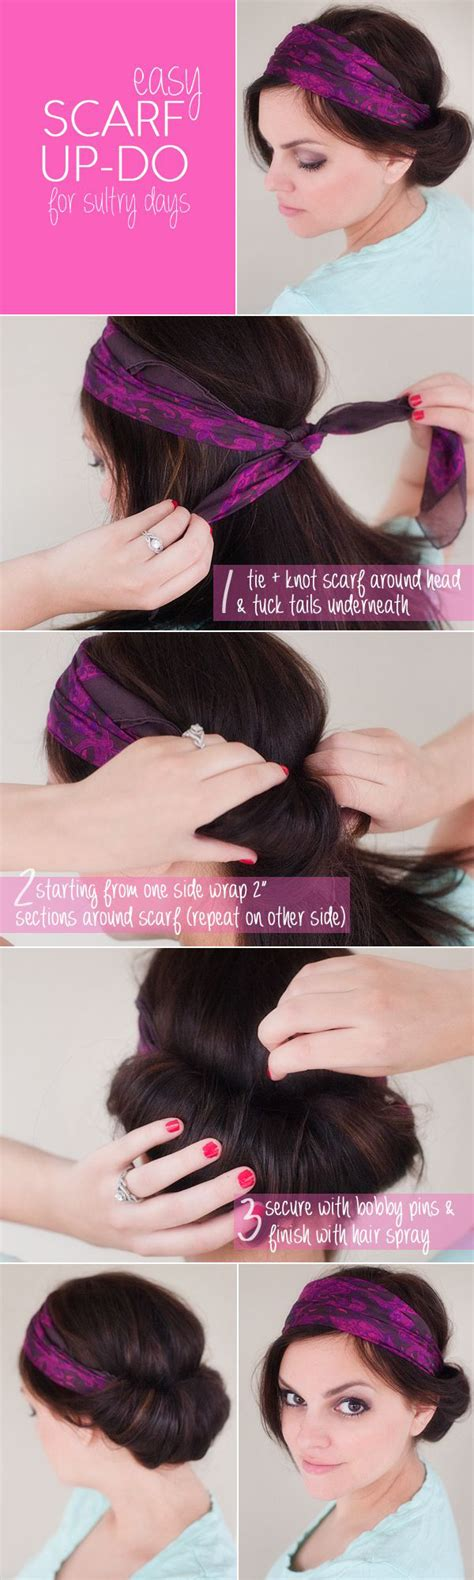 20 easy no heat summer hairstyles for girls with medium length hair 20 easy no heat summer hairstyles for girls with long hair